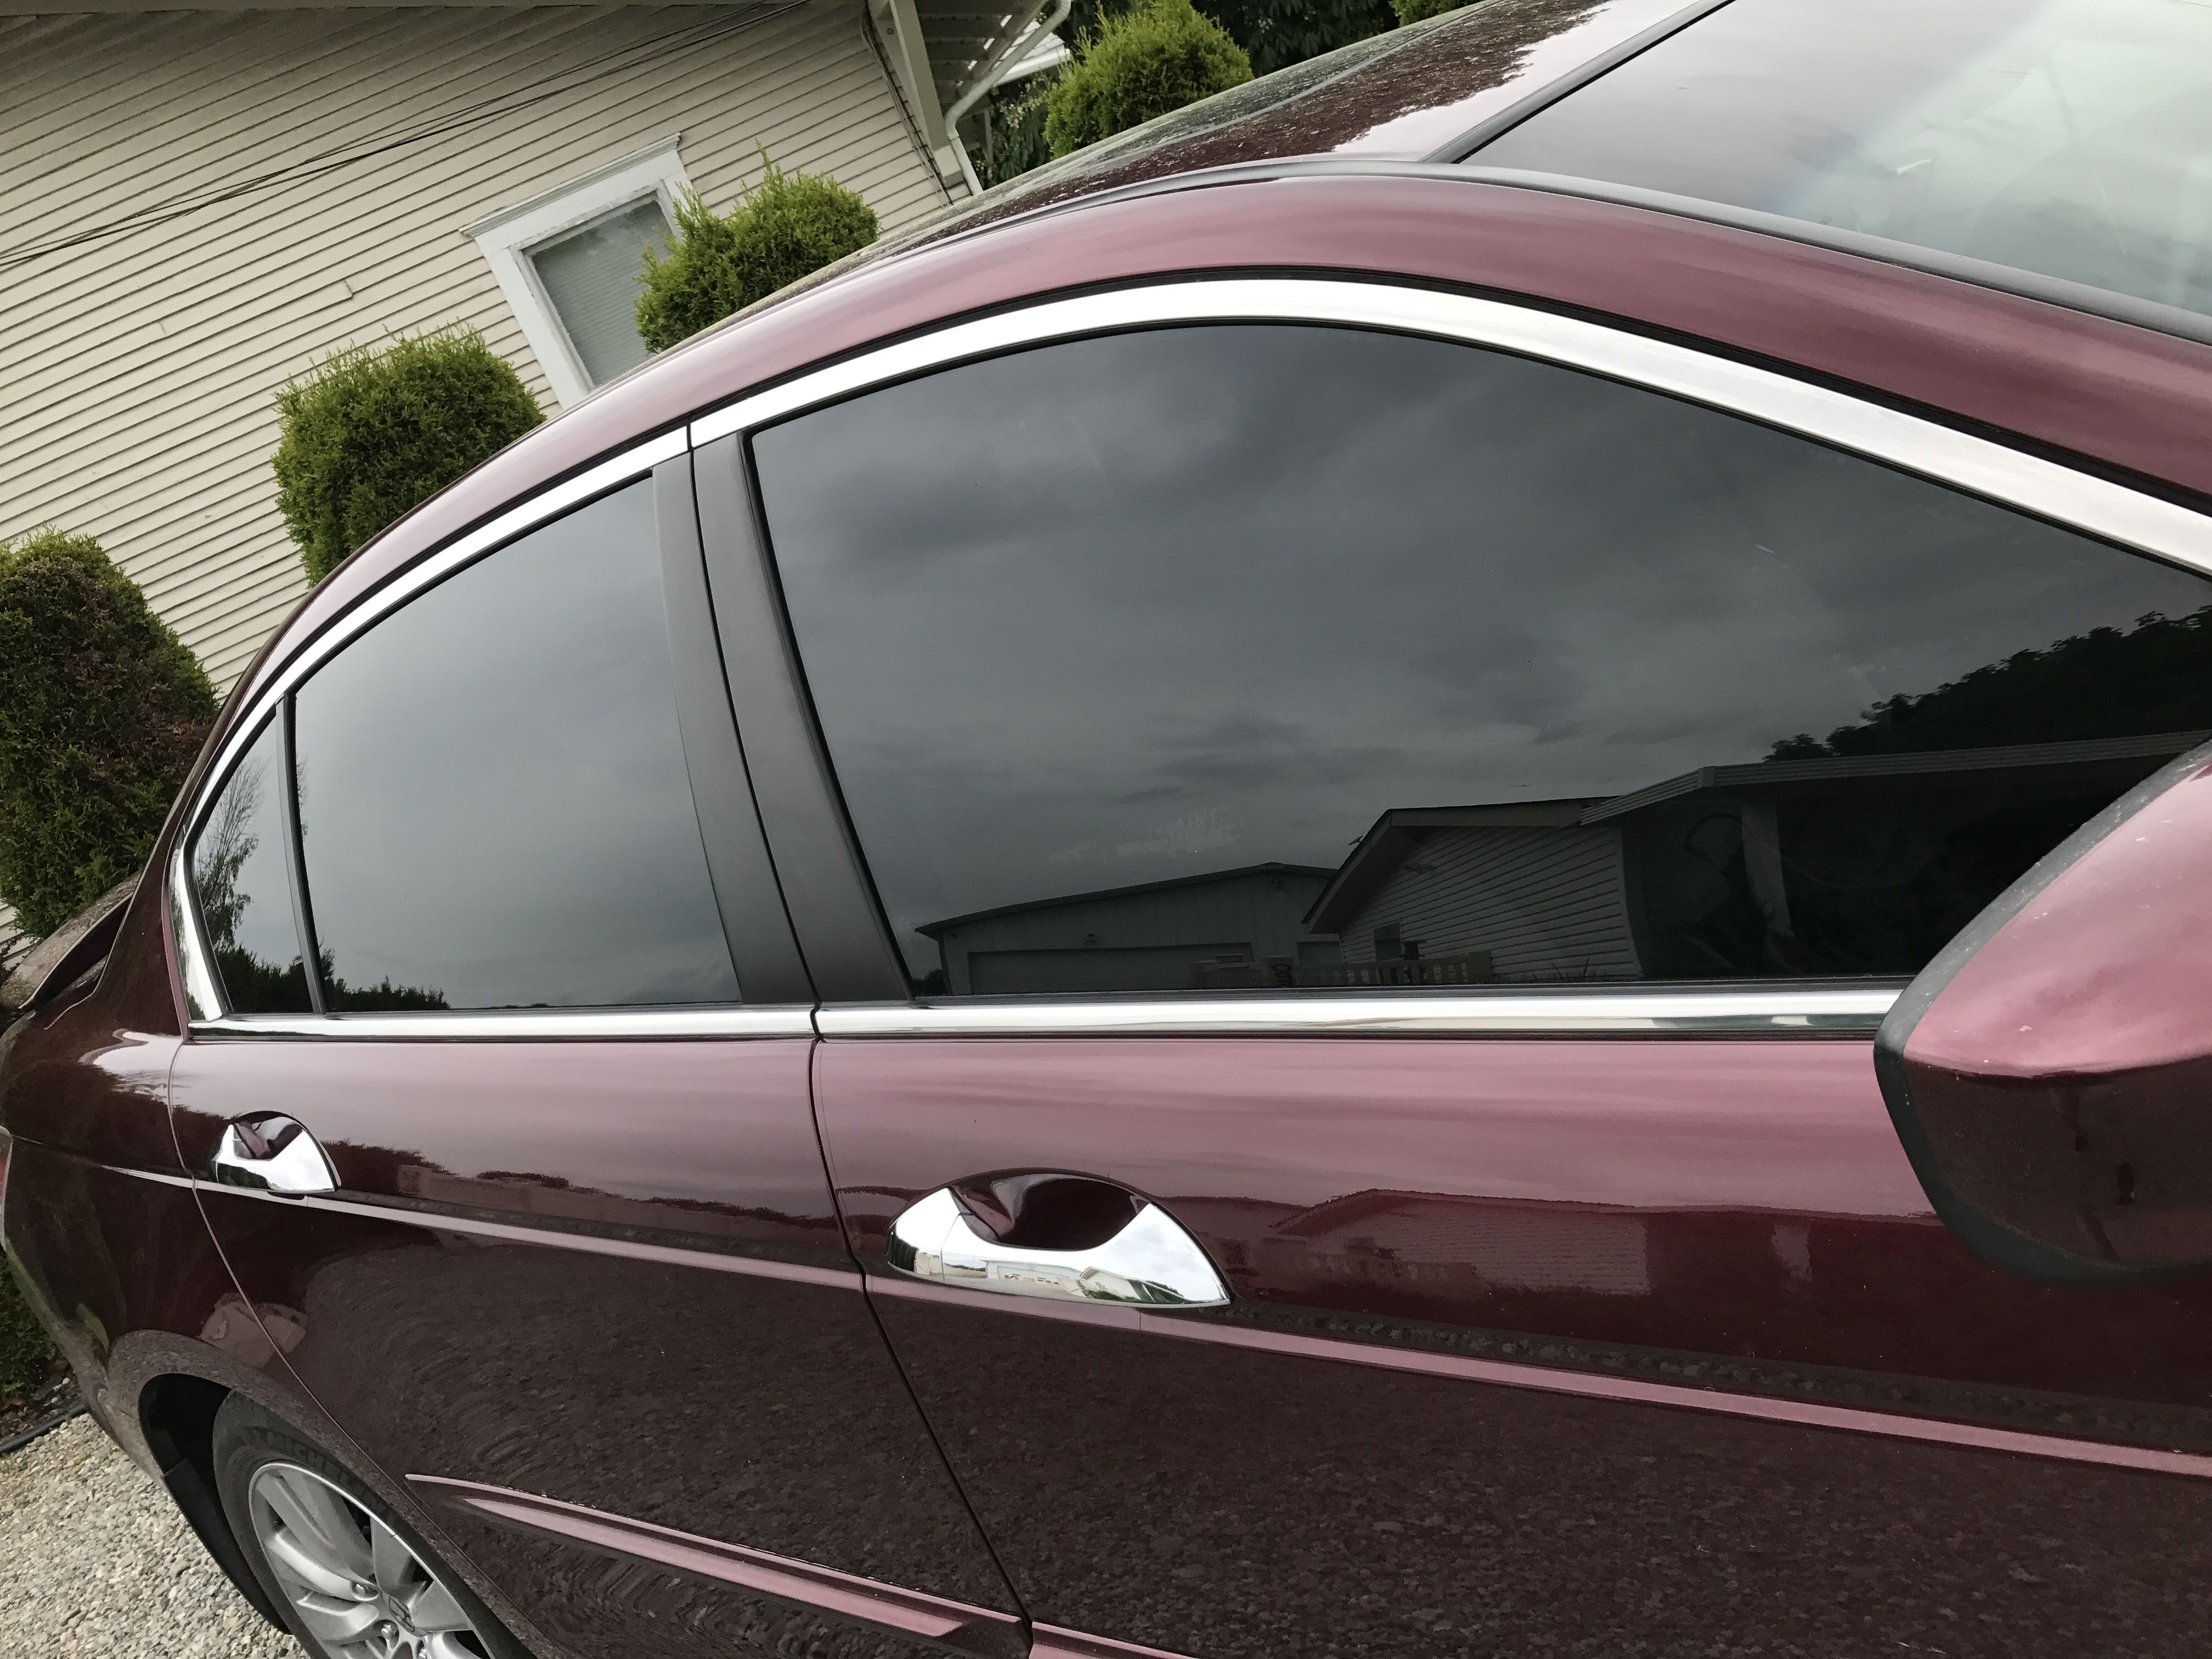 Look At This Before And After Pictures What A Difference The Windows Literally Change The Whole Appearance Of T Dream Car Garage Tinted Windows Dream Cars